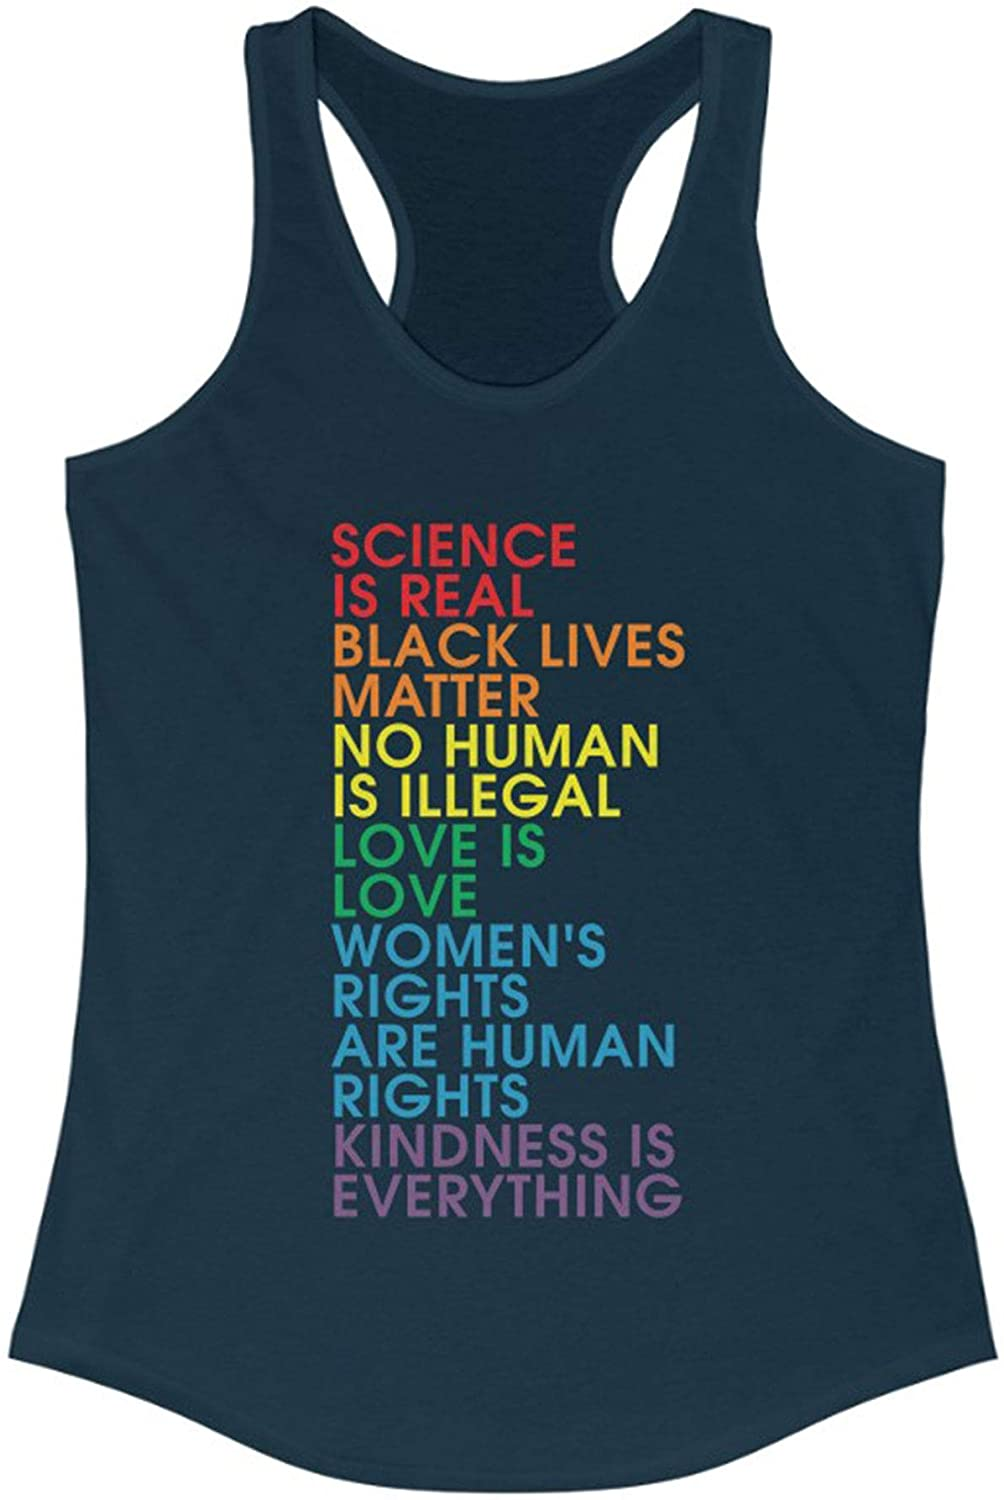 Science is Real Black Lives Matter Justice Equality Love Woman Rights Tank Top for Women